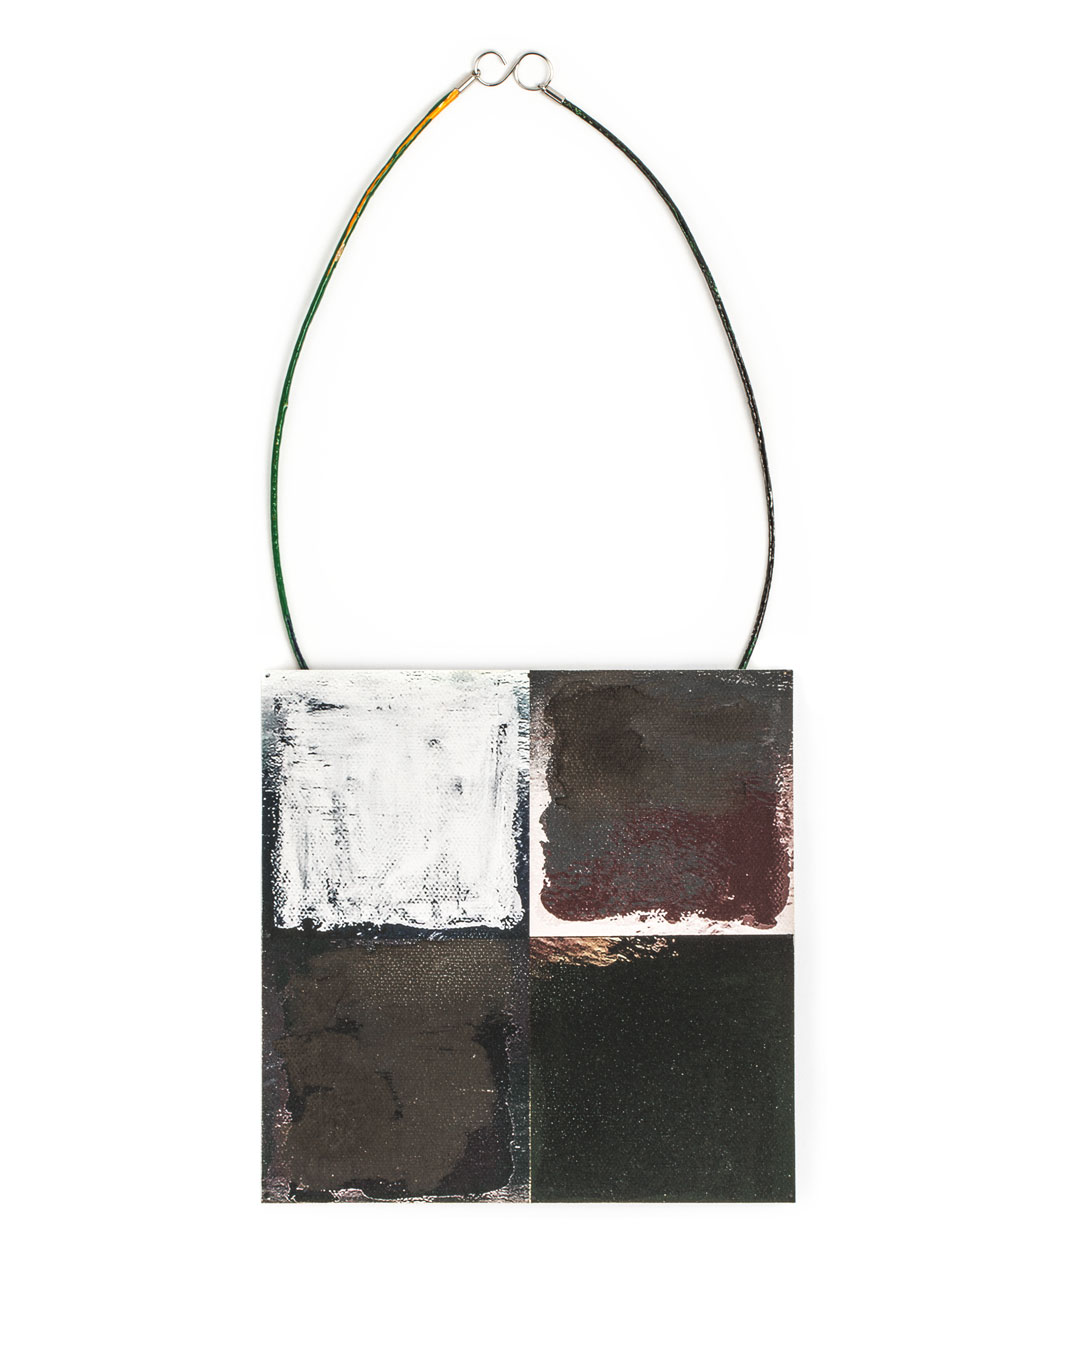 Robert Smit, untitled, 2019, necklace; canvas, ink, tinplate, cord, epoxy, silver, steel, 150 x 150 mm, €5800